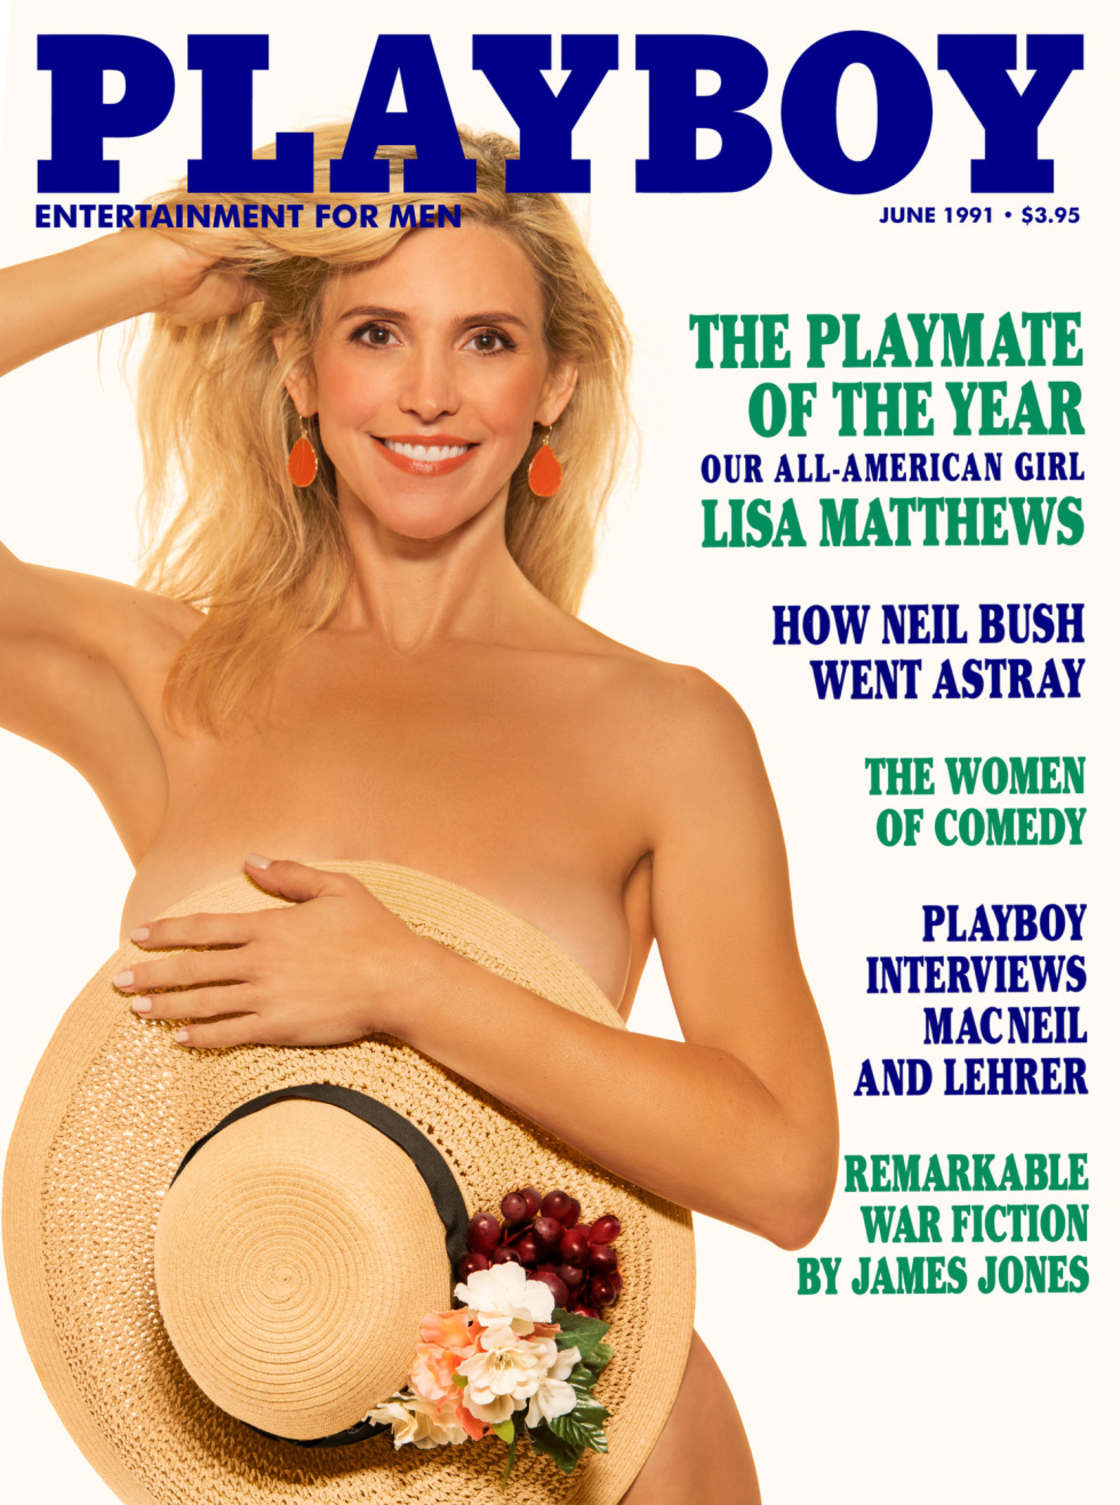 playboy playmates recreate their covers 30 years after the